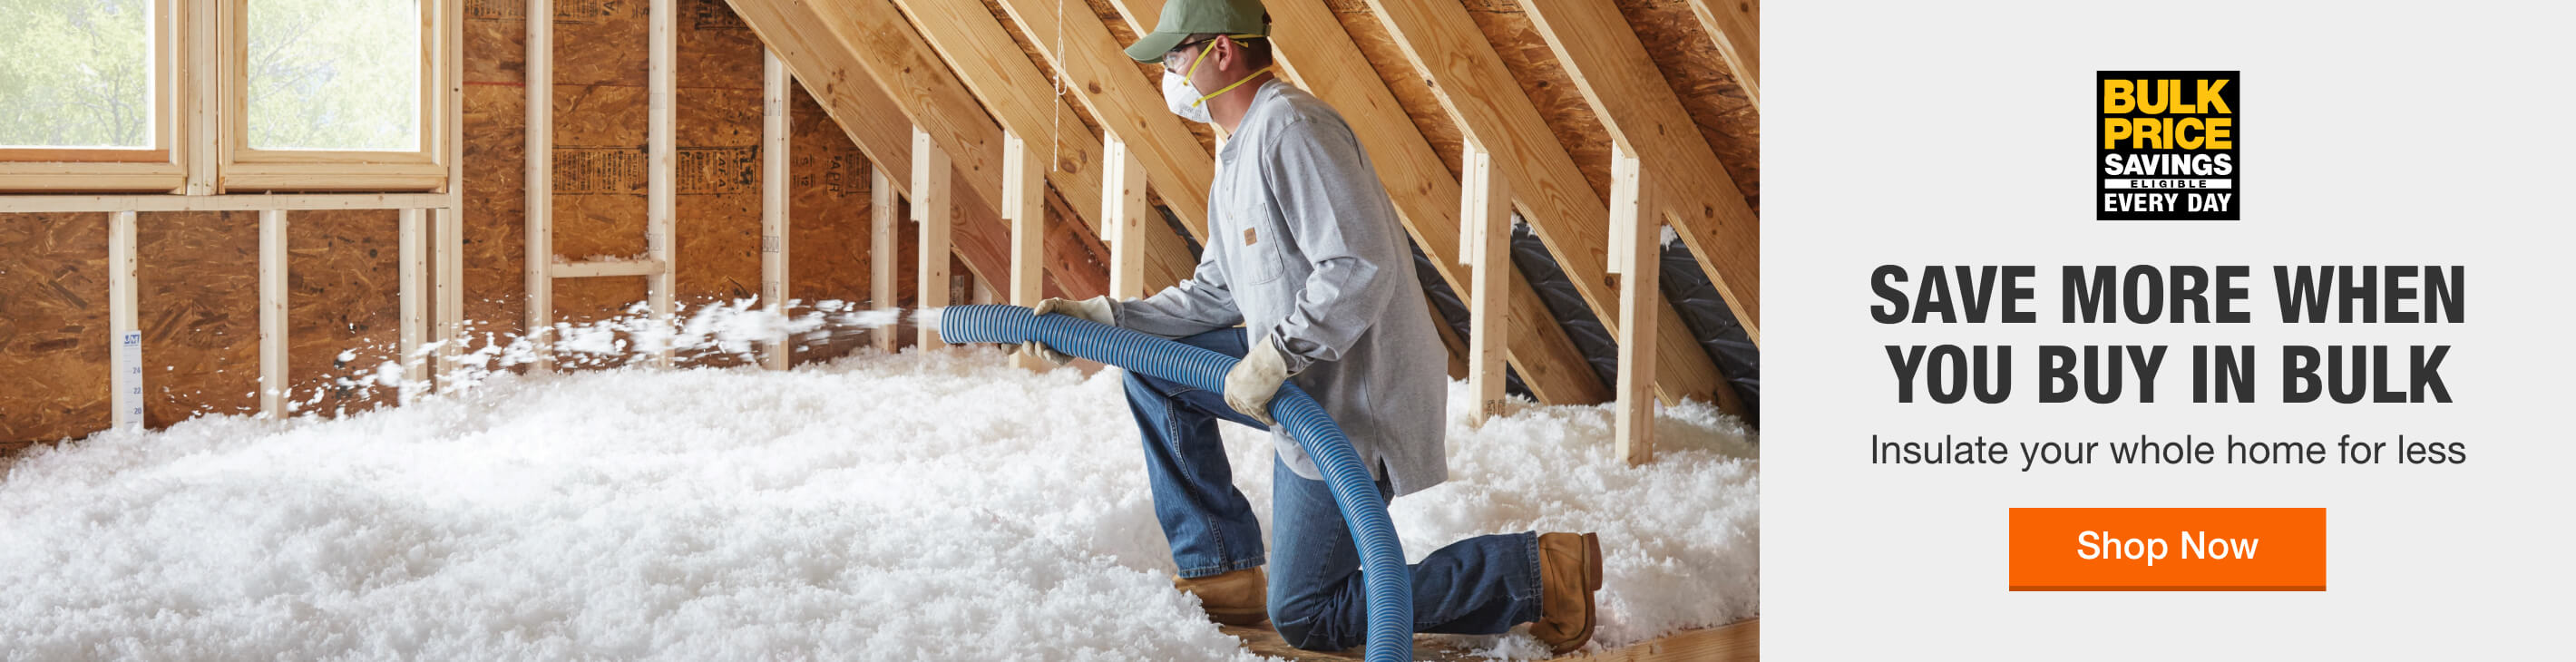 man blowing in insulation into attic